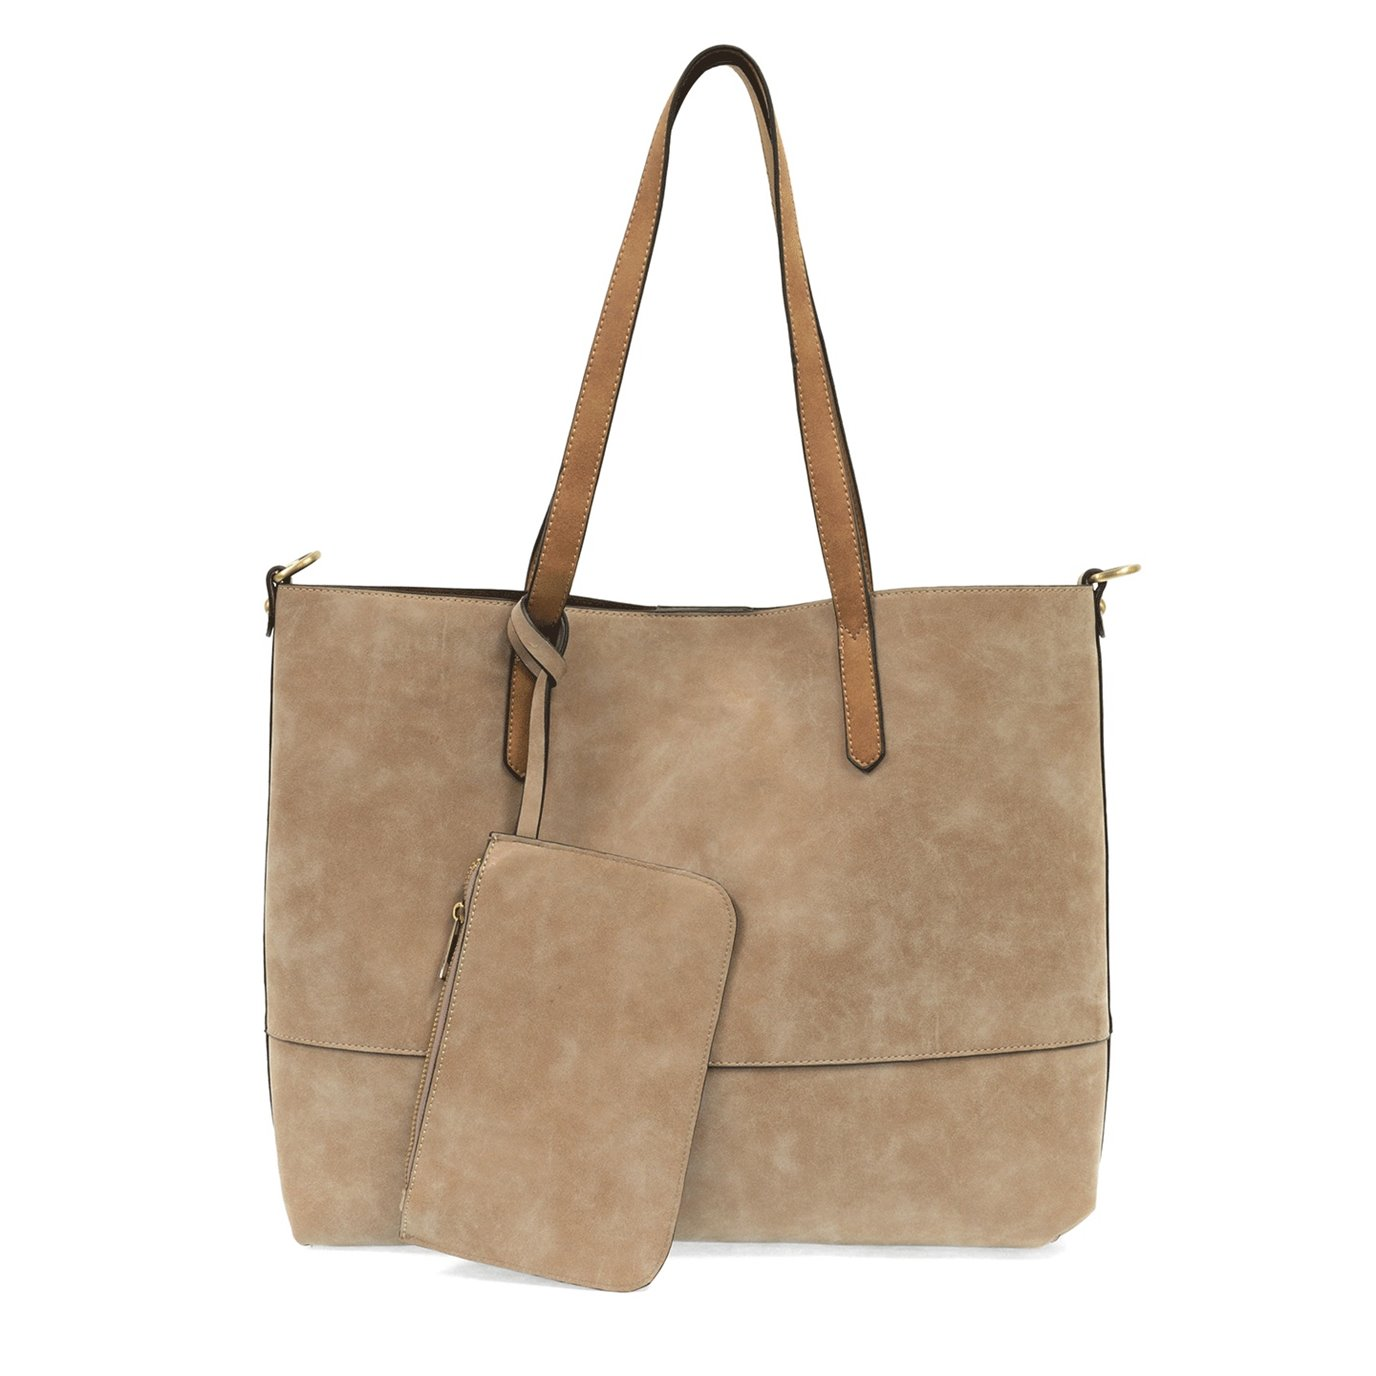 Brushed Sand 2-in-1 Tote